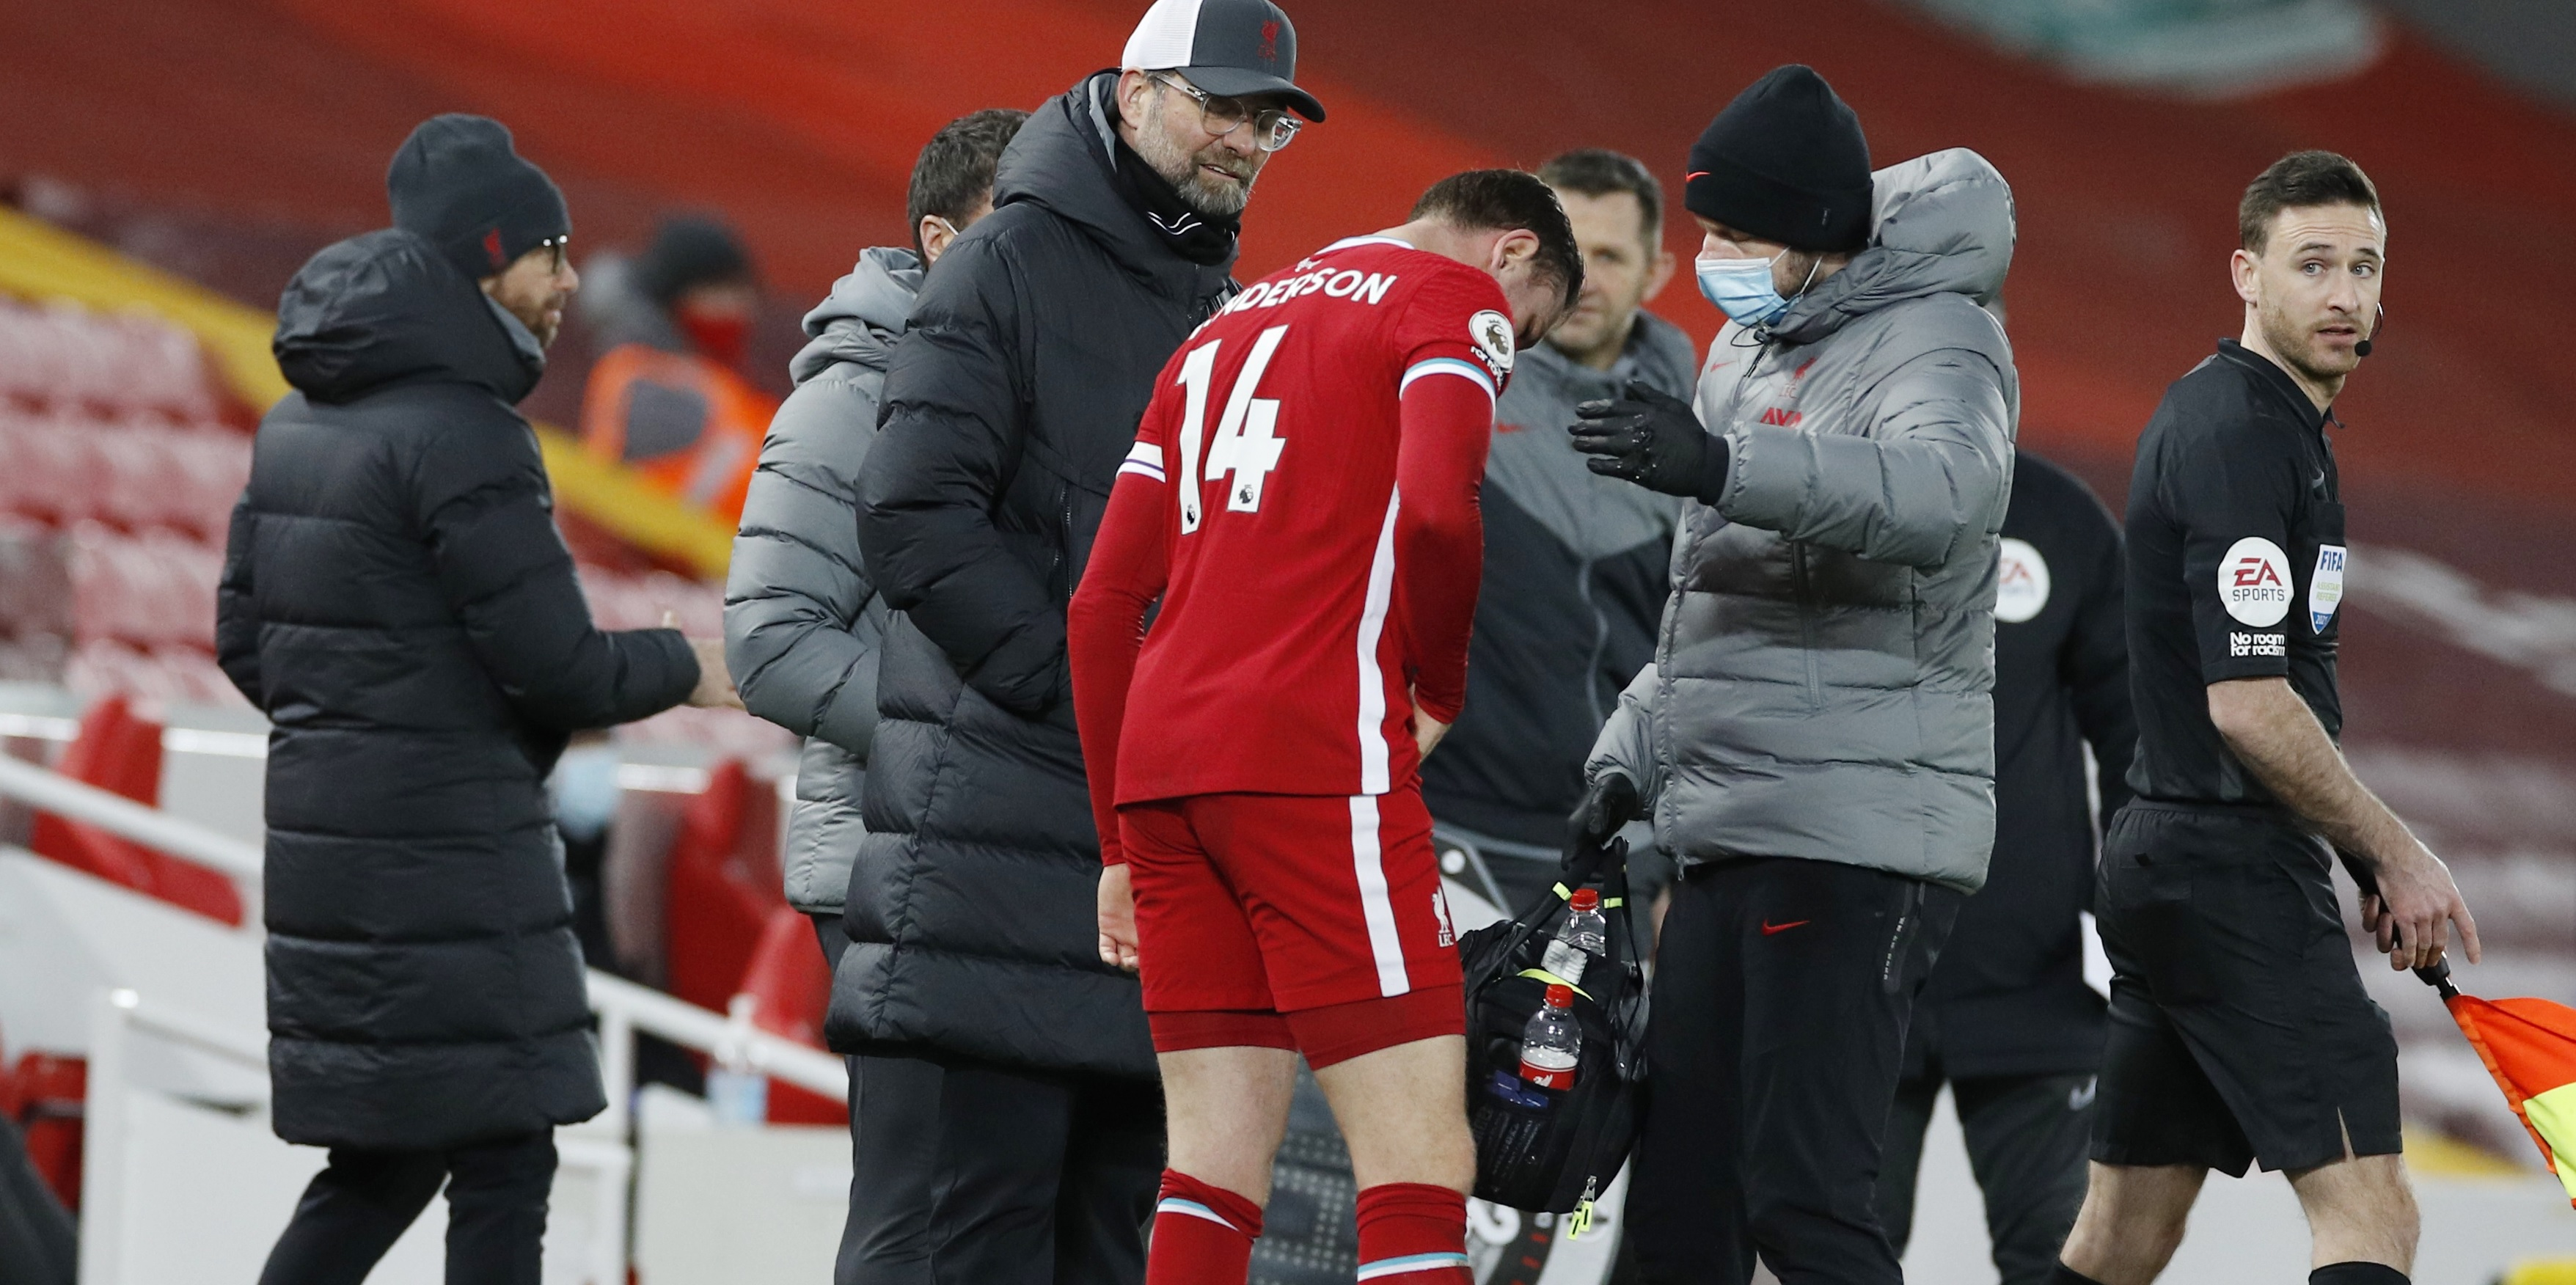 Liverpool fans react to latest injury setback with Henderson subbed before half-time after pulling hamstring